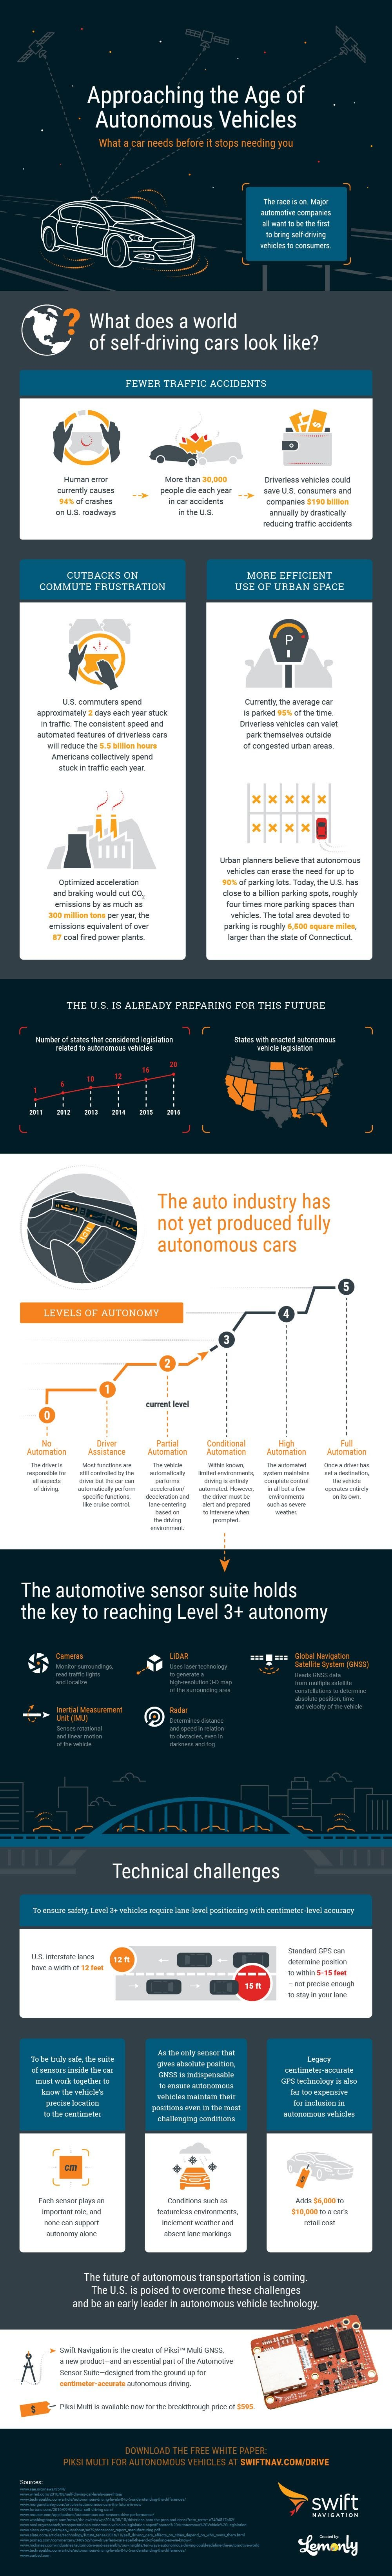 Approaching the age of autonomous vehicles #infographic